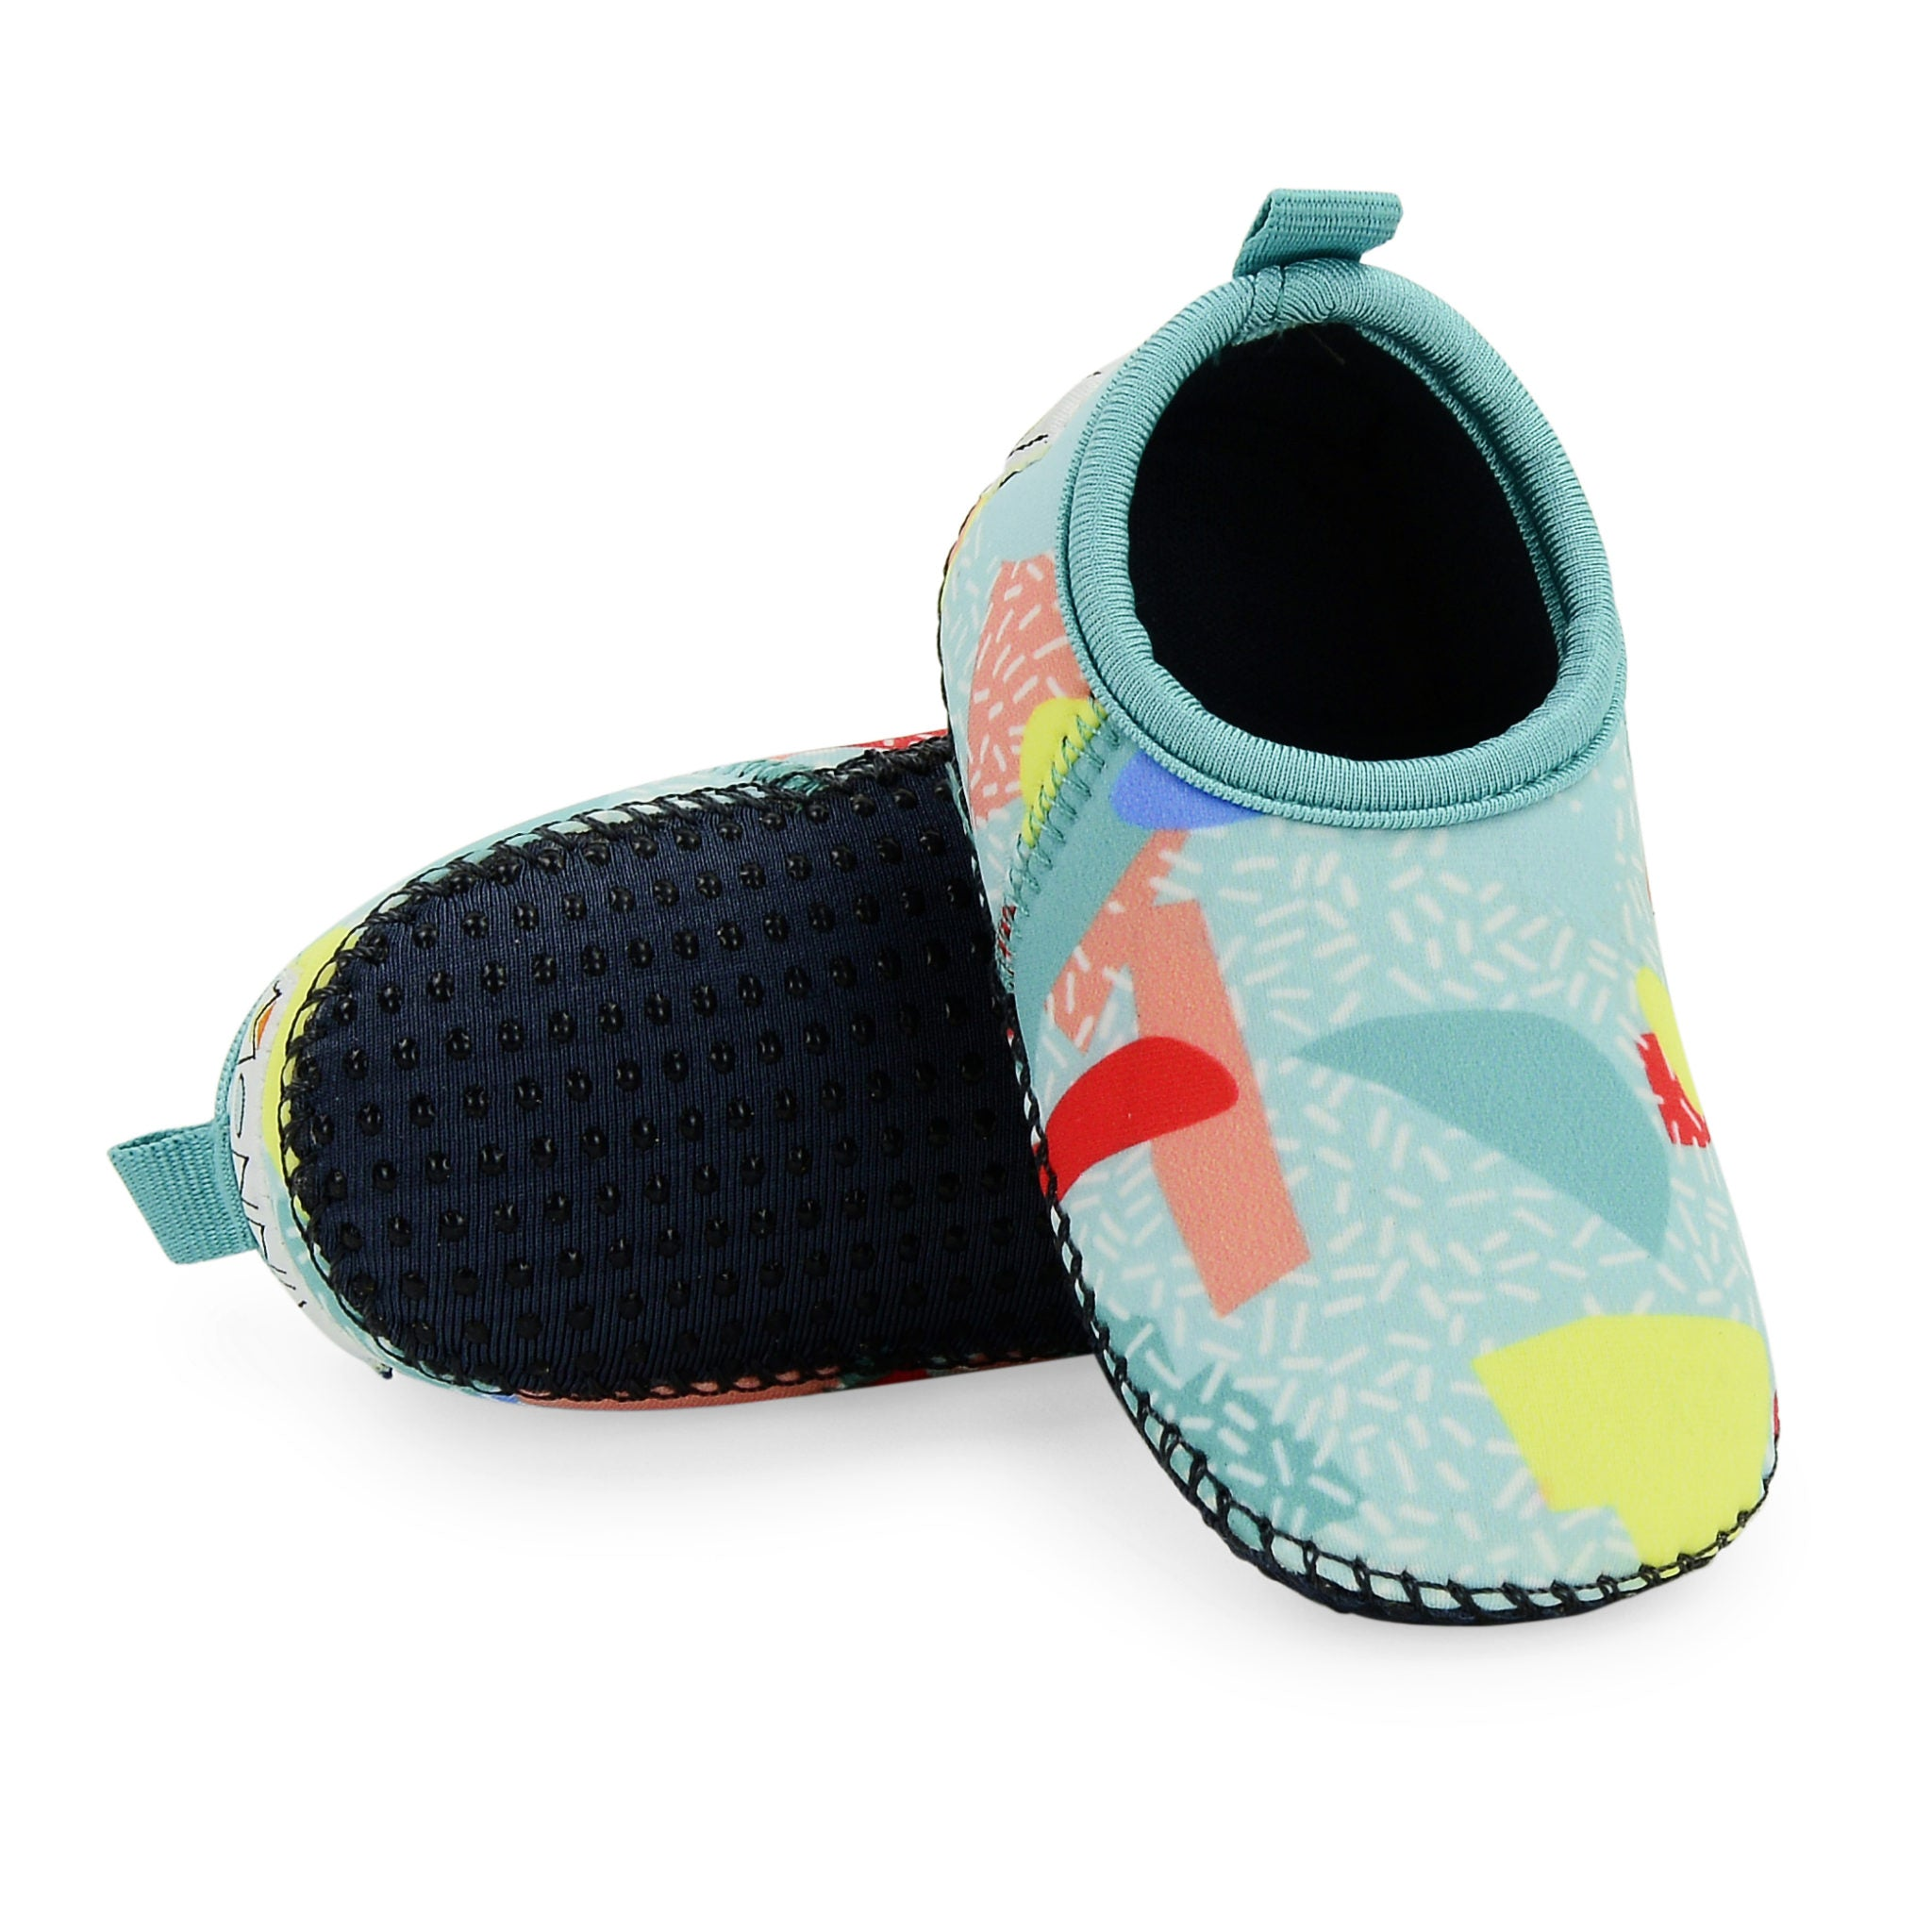 Sprinkles Toddler Soft Sole Beach Shoe - Chachi's Bay - kids rashies - kids swimwear - kids swim shoes - round towels - beach towels